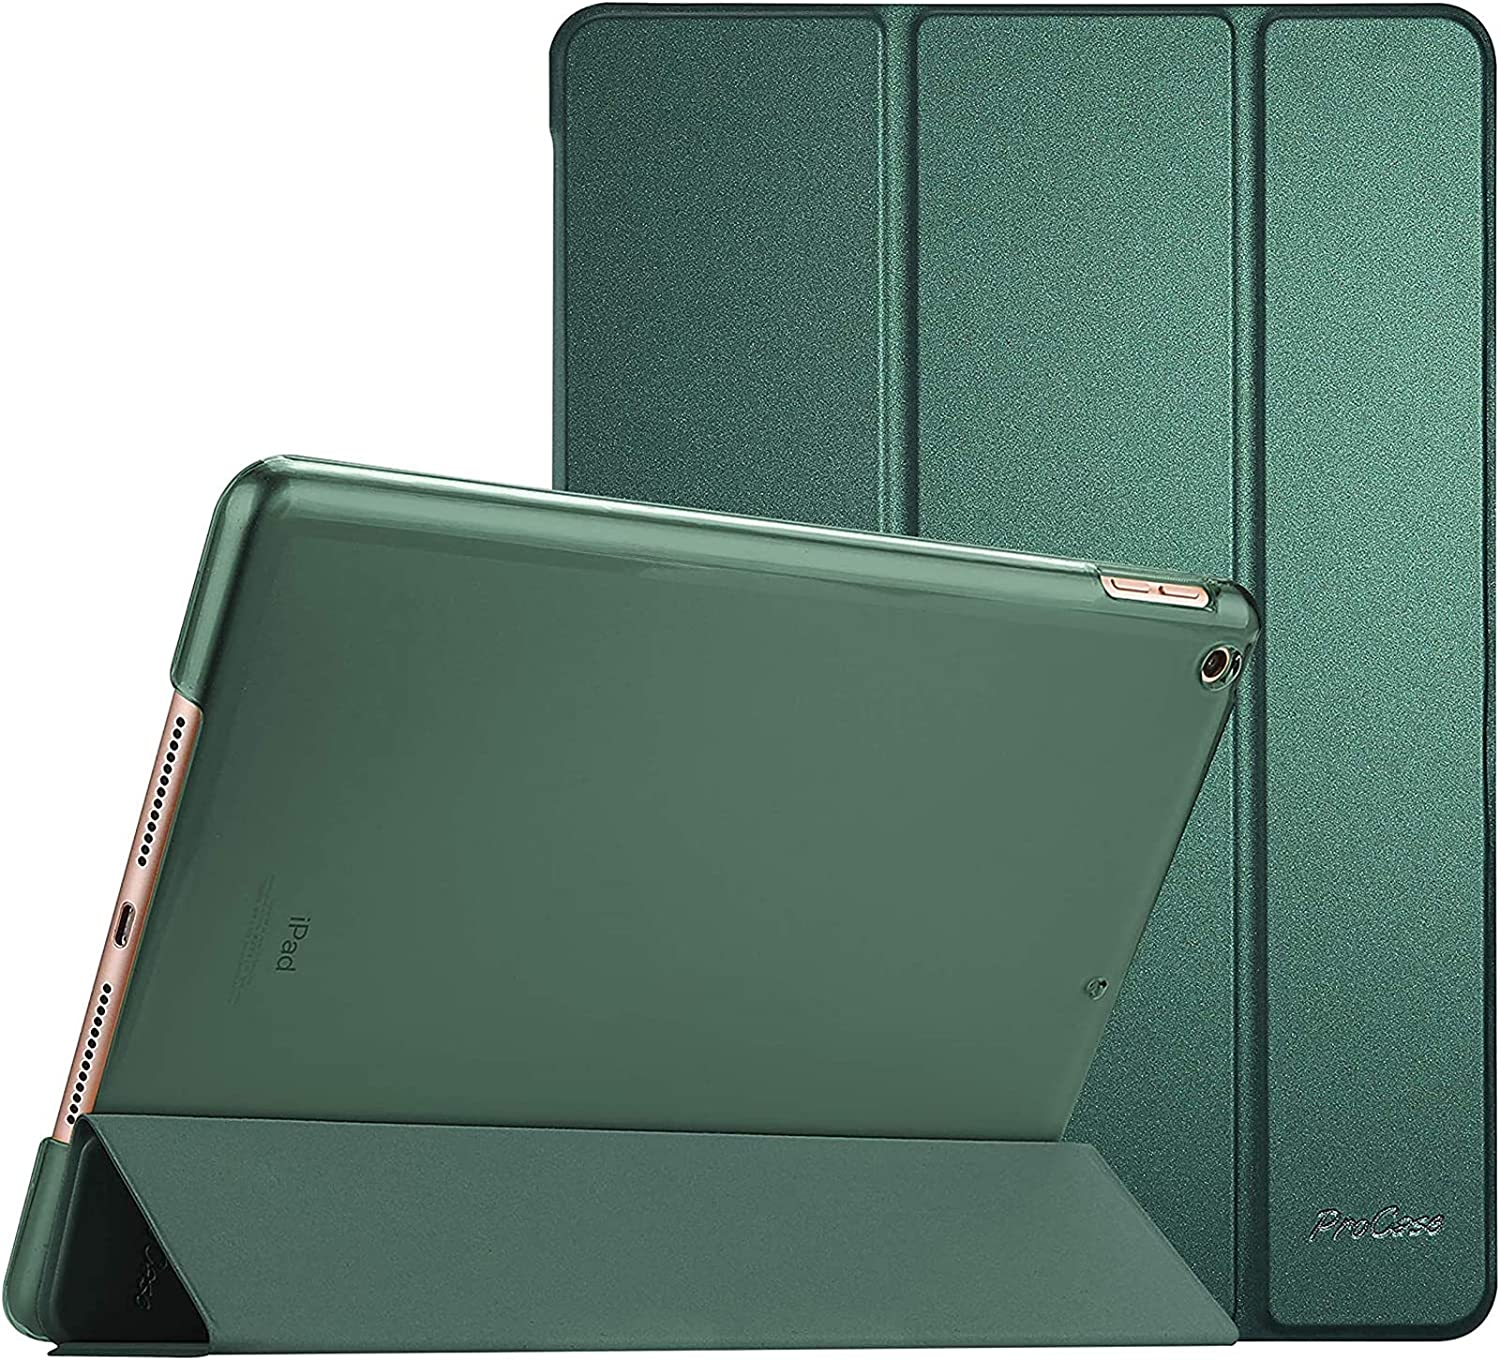 """ProCase iPad 10.2 Case 2020 iPad 8th Generation Case / 2019 iPad 7th Generation Case, Slim Stand Hard Back Shell Protective Smart Cover for 10.2"""" iPad 8 / iPad 7 -Midnight Green"""